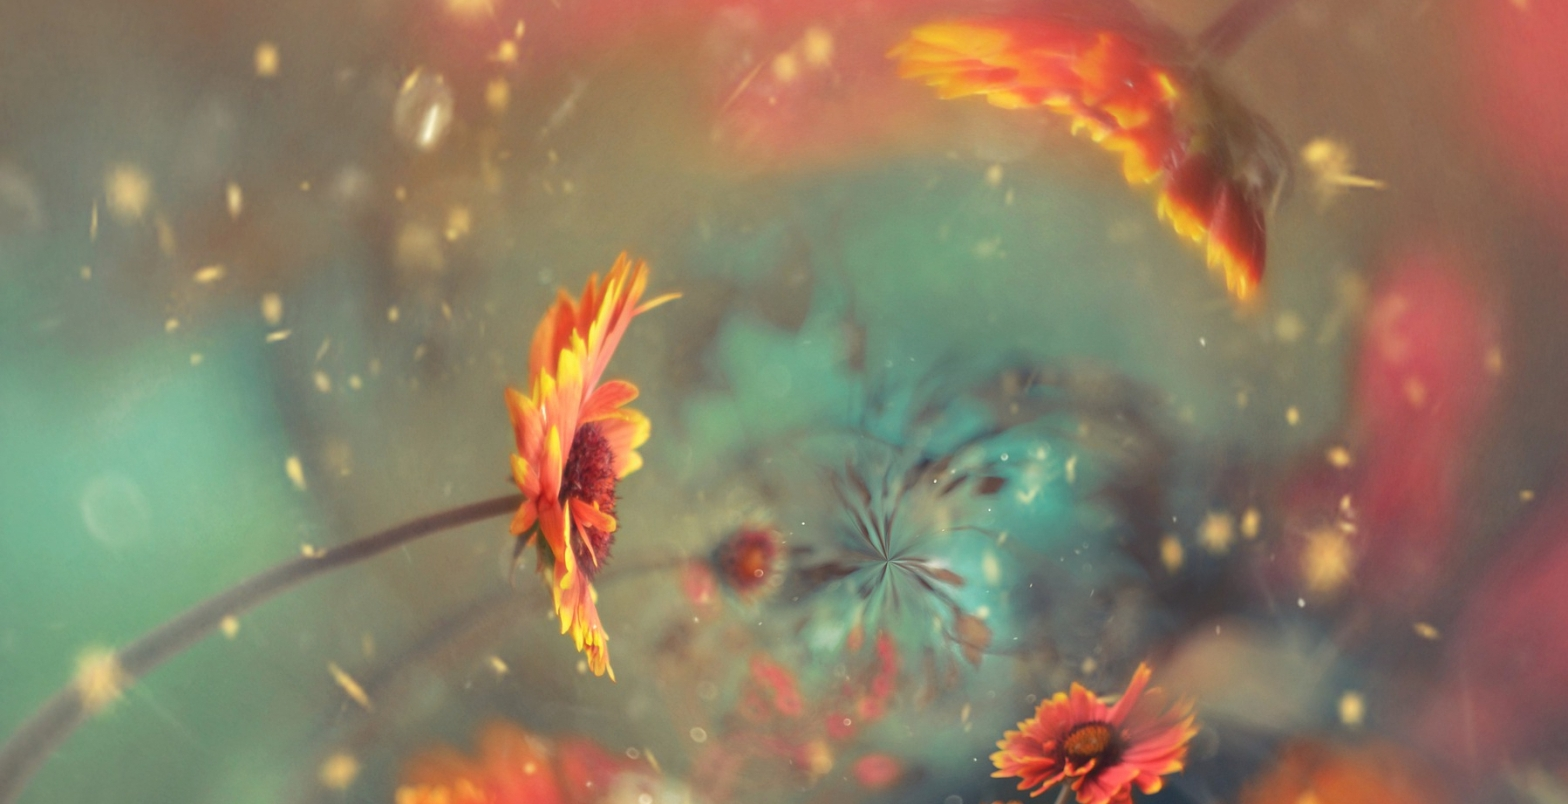 Poetry abstract are with colors nebulizing from the center with sunflowers facing that center